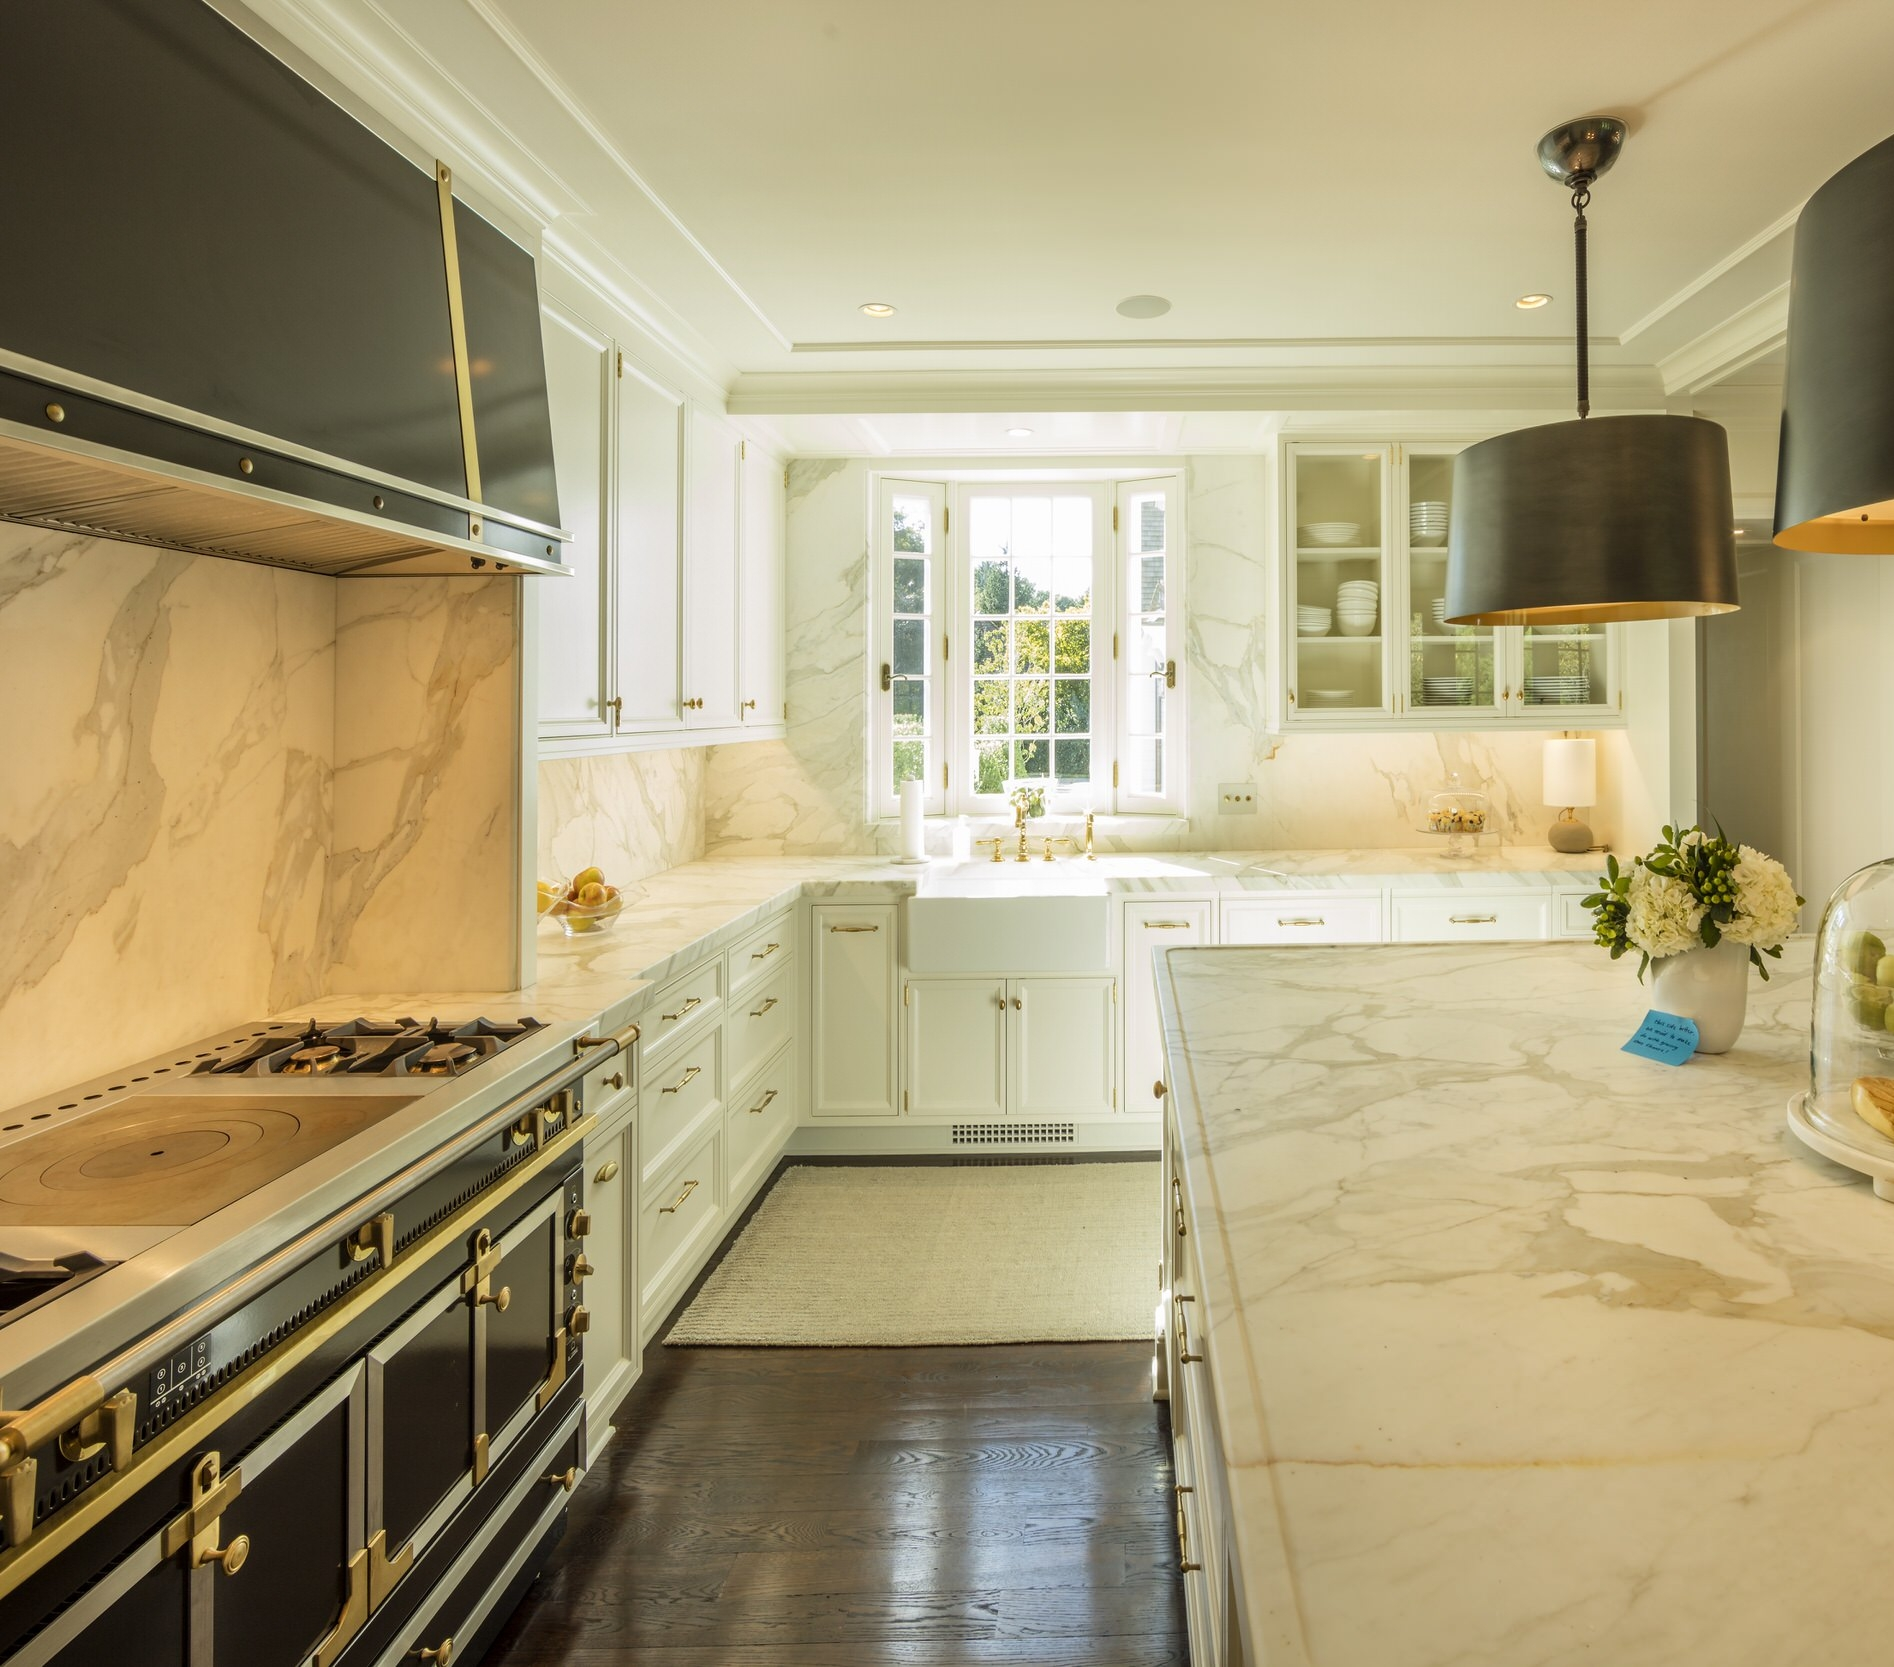 Kitchen, full stonework splash and window surround, and millwork—designed for Hamady Architects